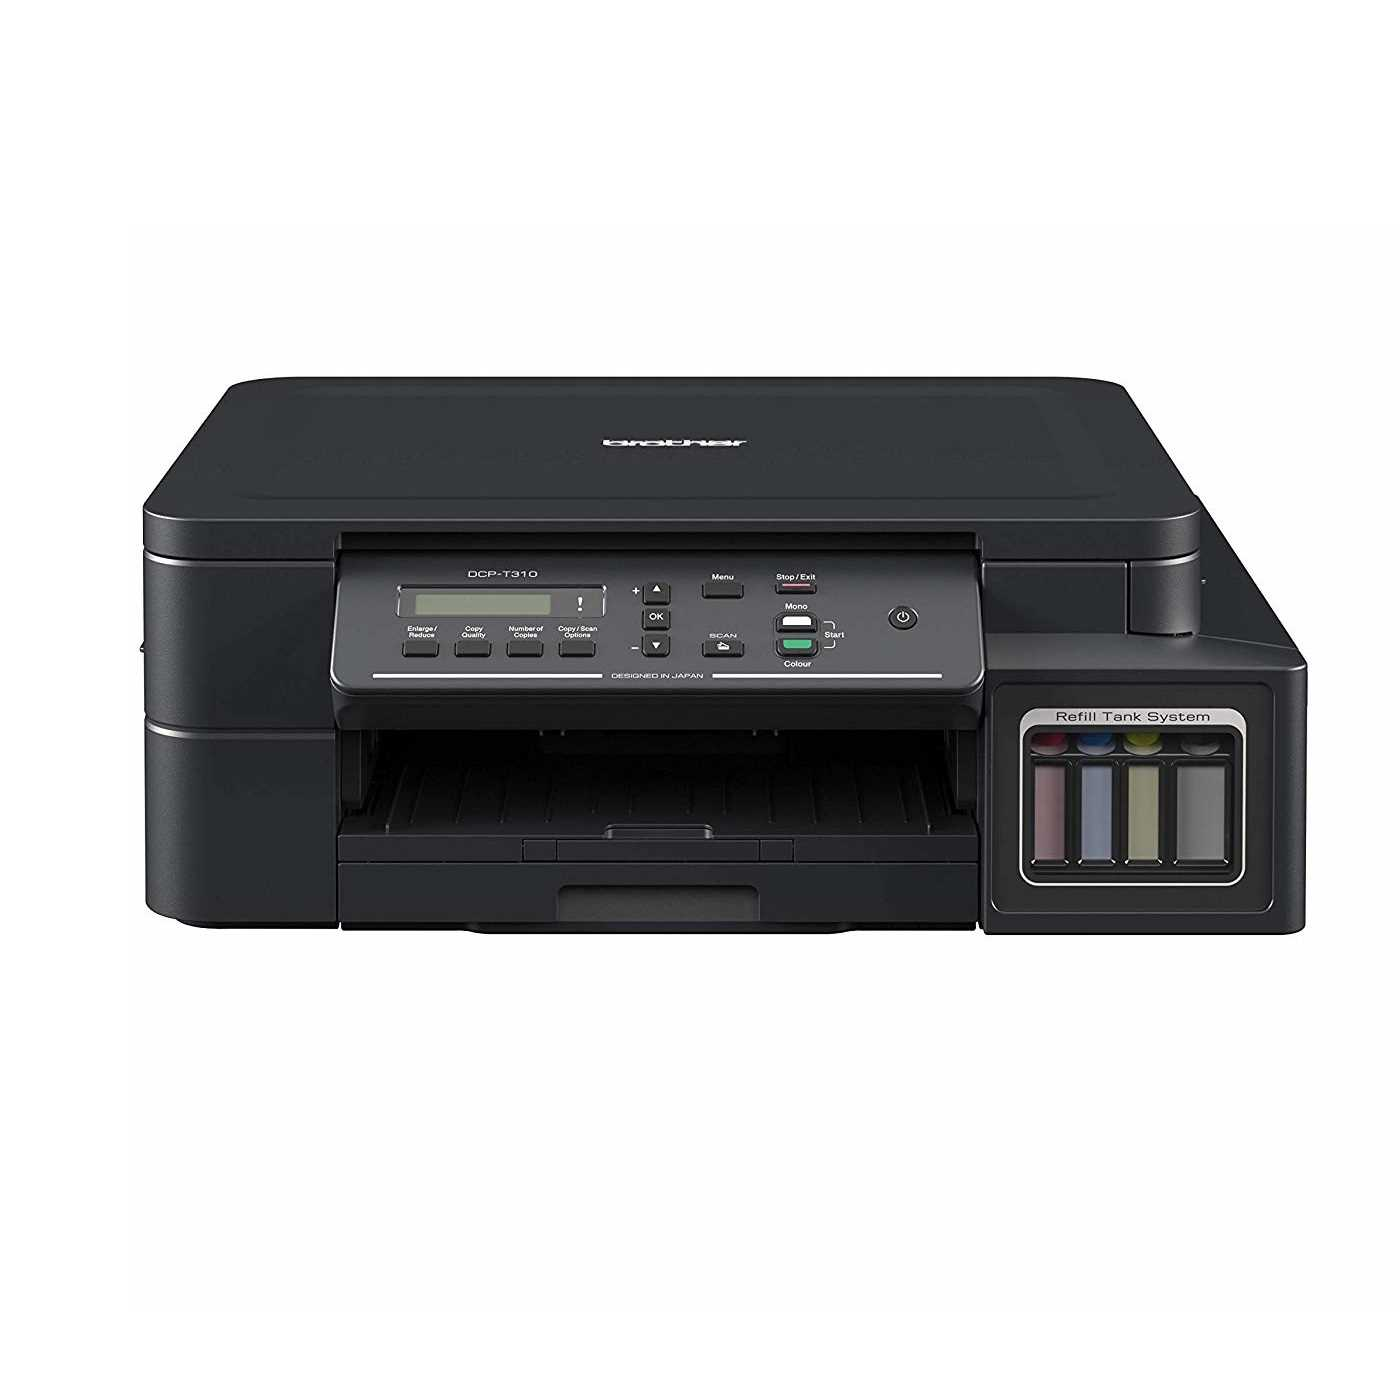 Brother DCP-T310 Inkjet Multifunction Printer